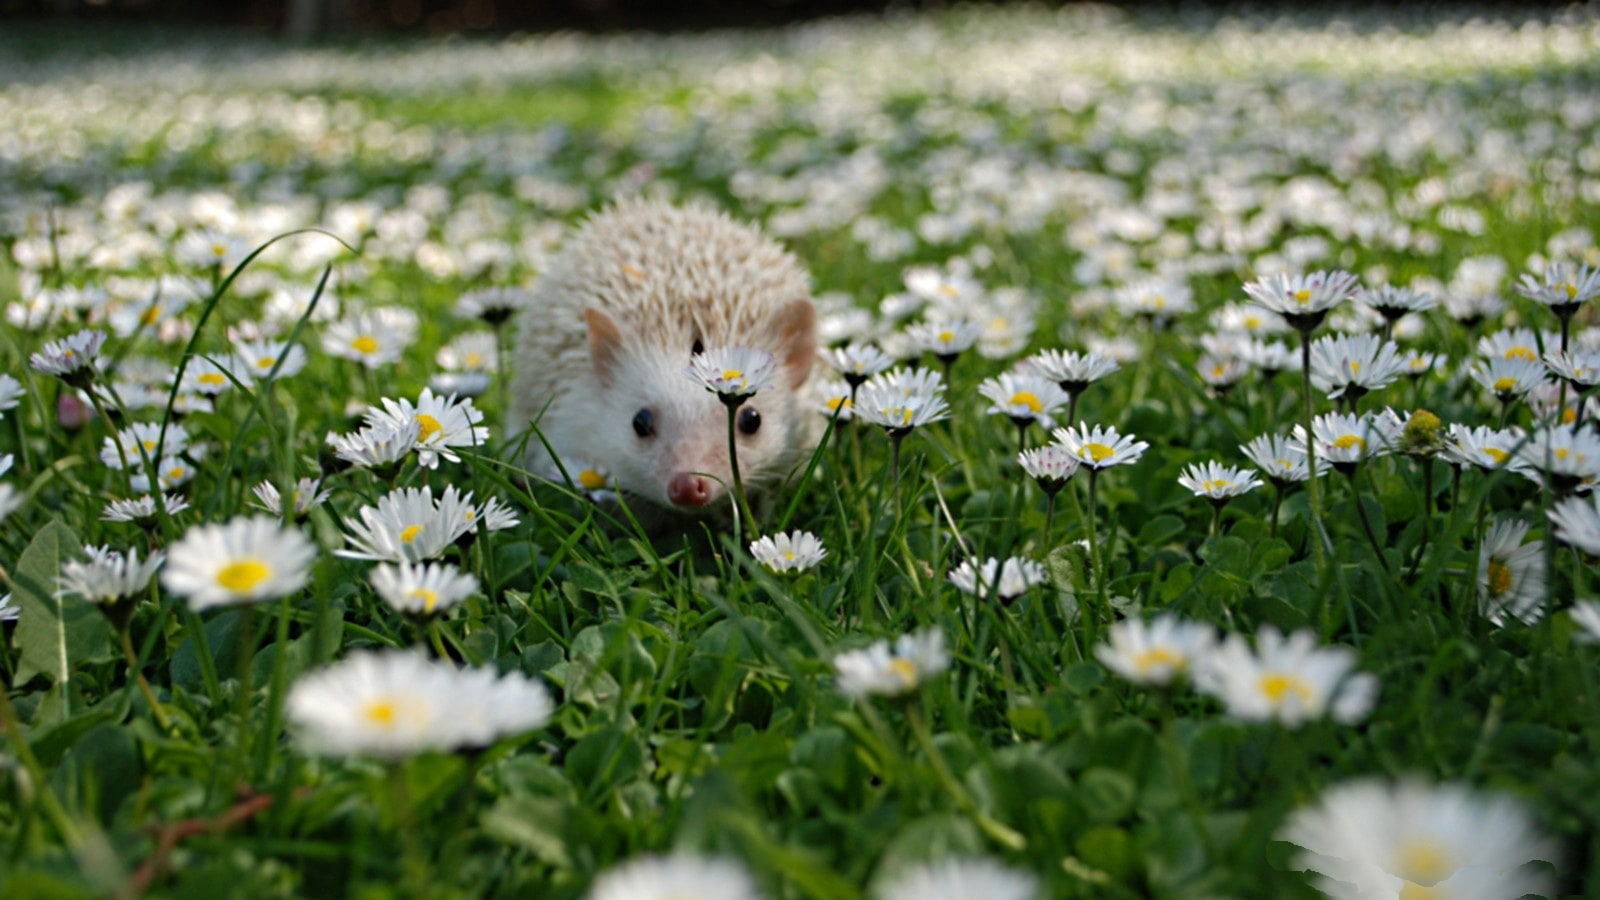 Hedgehog Wallpapers hd